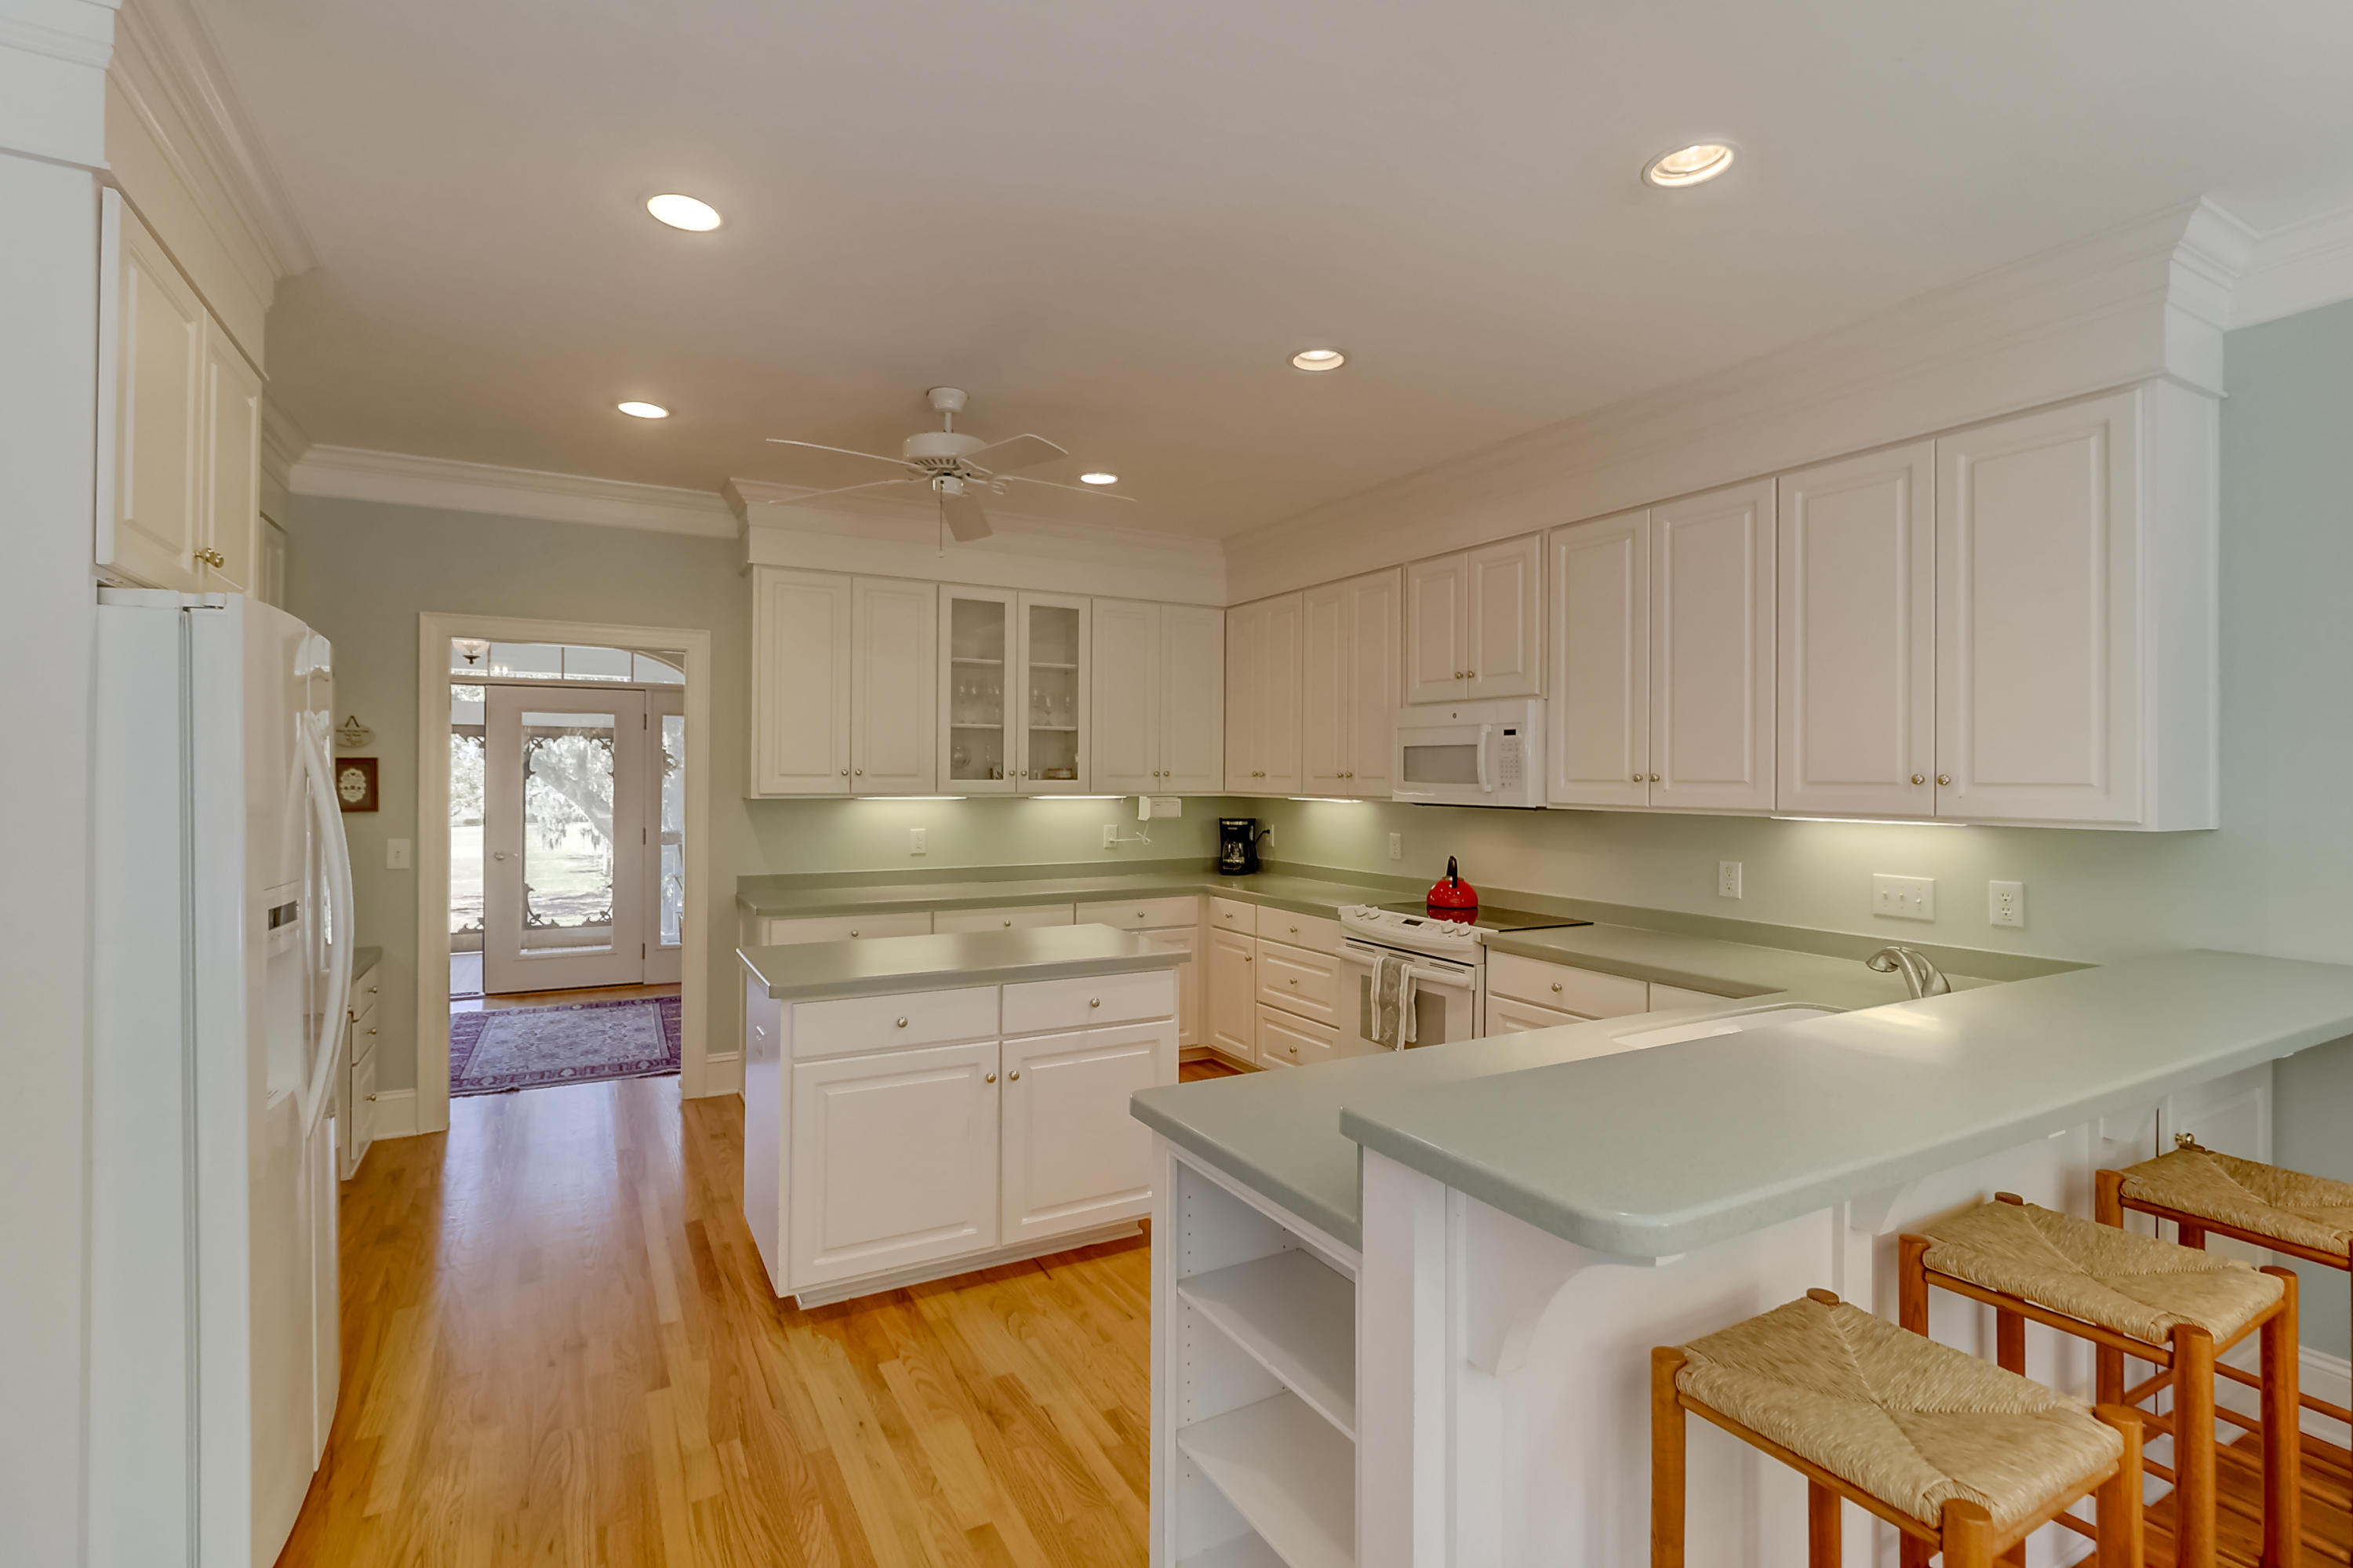 Stratton Place Homes For Sale - 1494 Stratton, Mount Pleasant, SC - 61